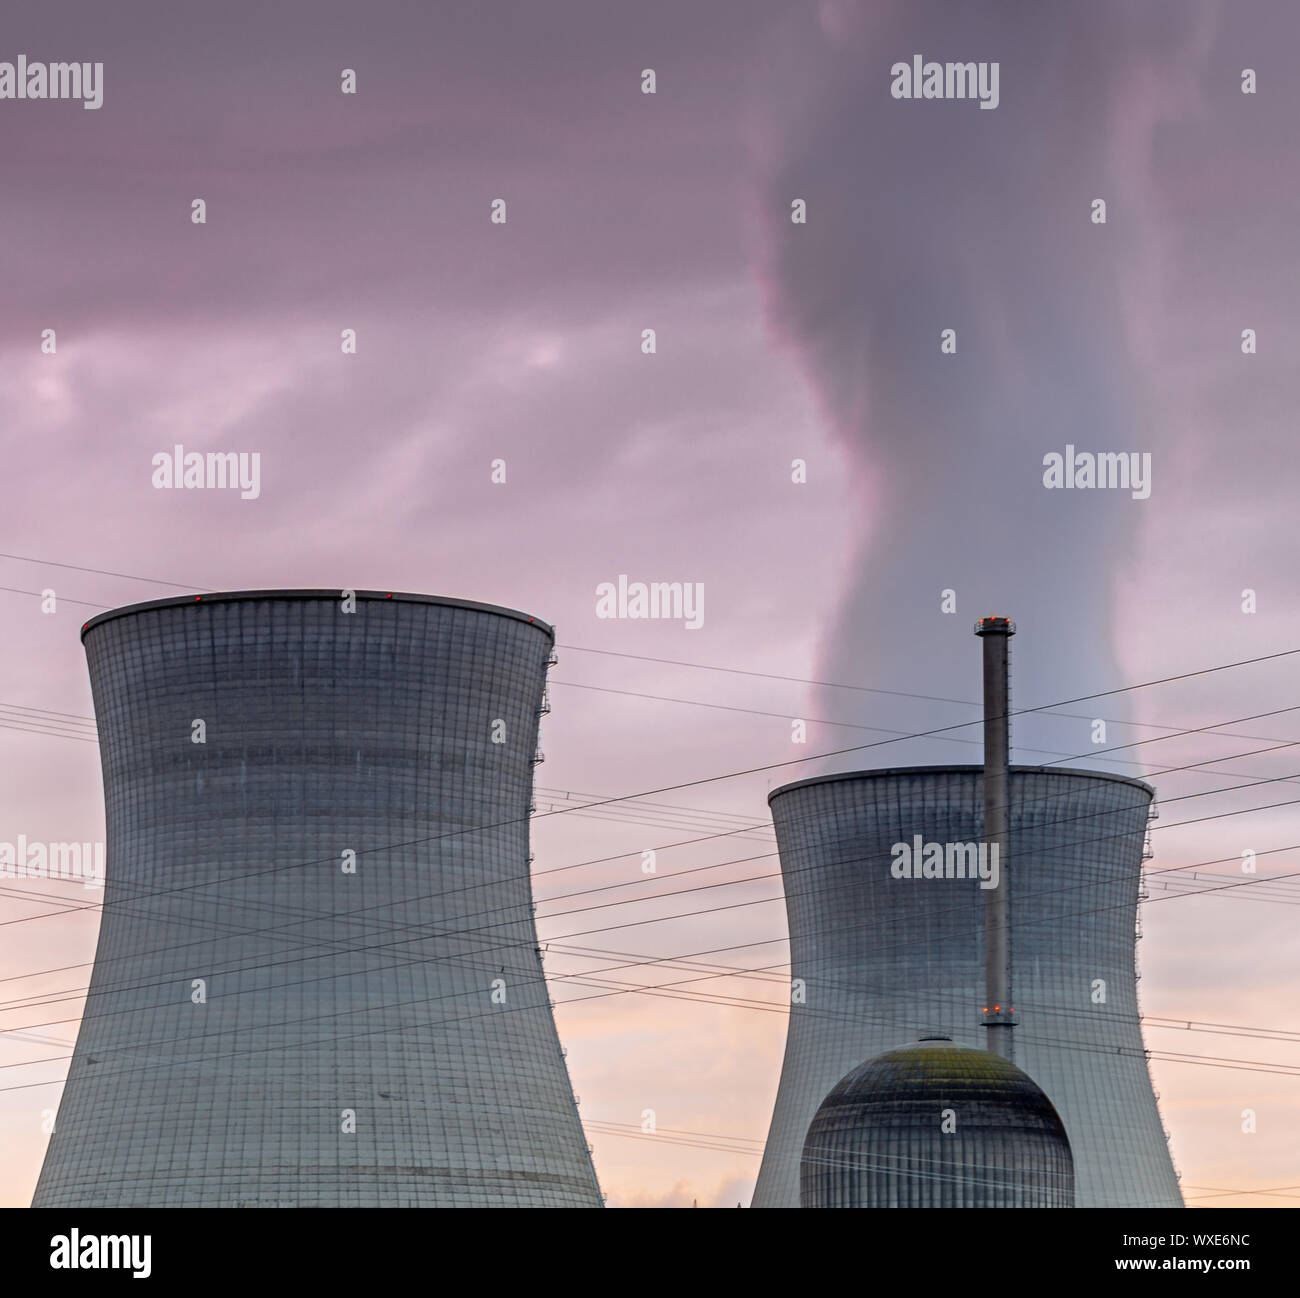 Nuclear power plant in evening light Stock Photo